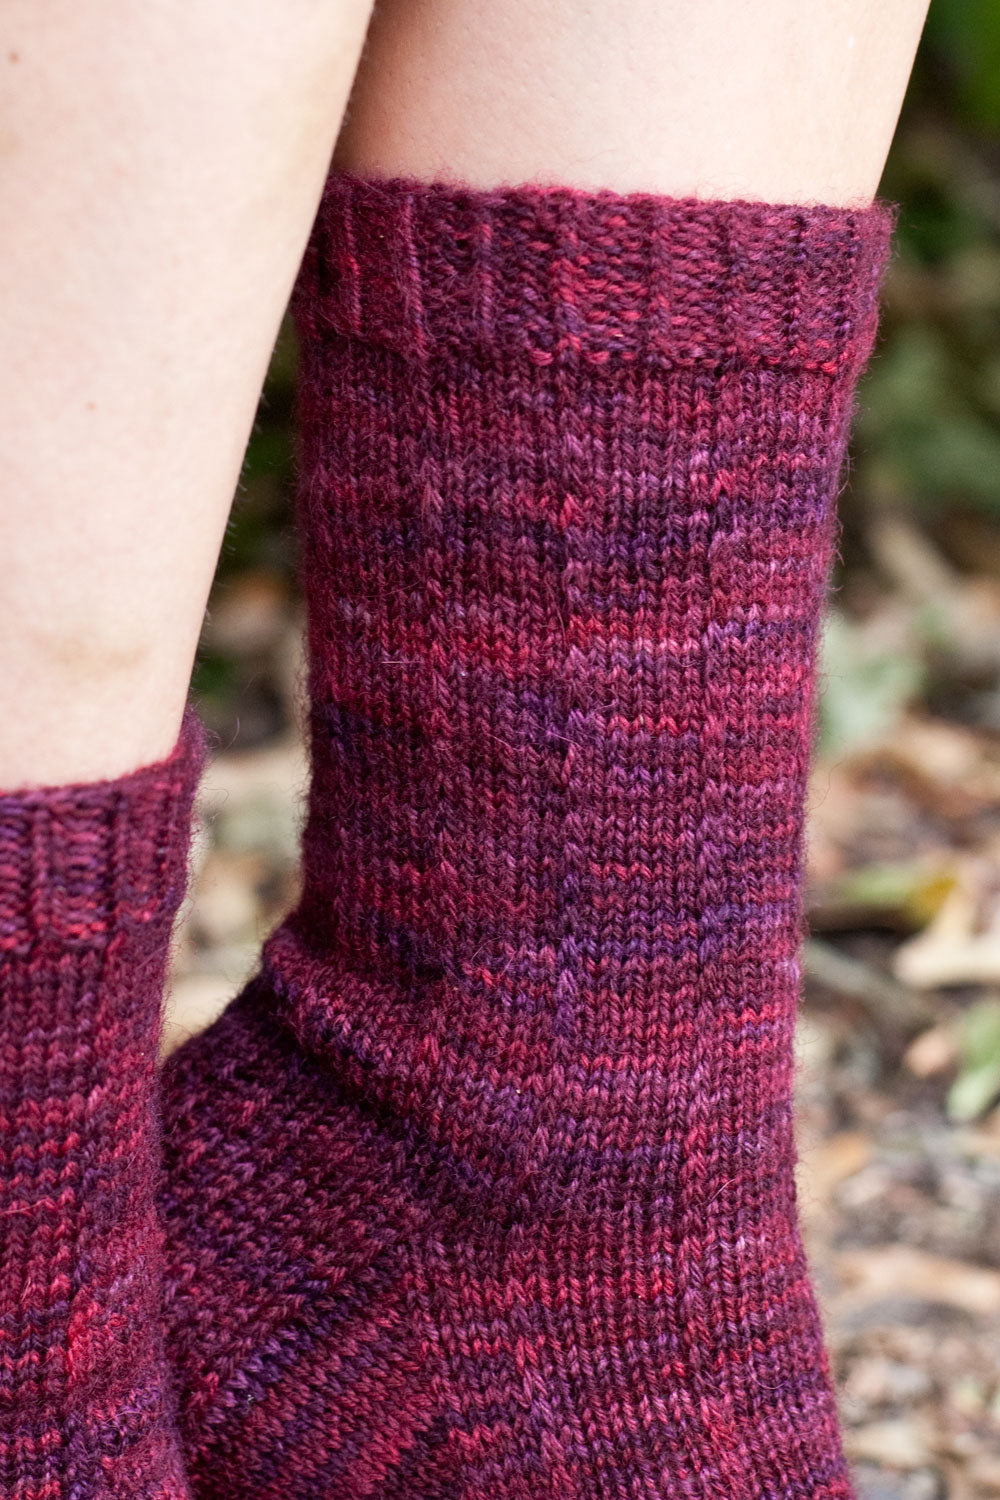 Cuff detail of pinstripe socks showing twisted rib